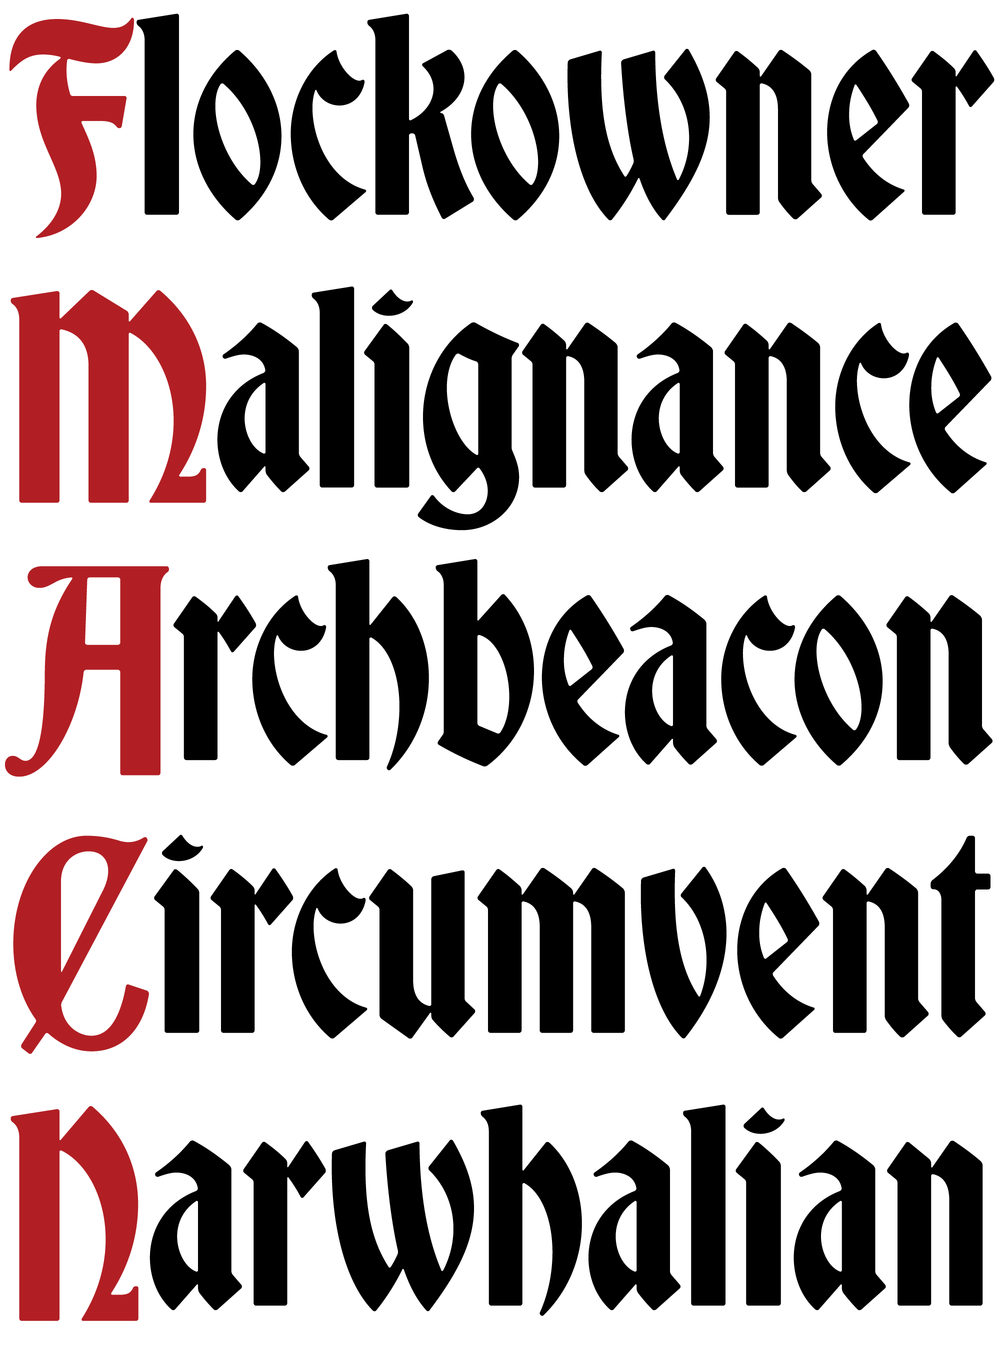 bradley-djr-font-of-the-month-lines.png